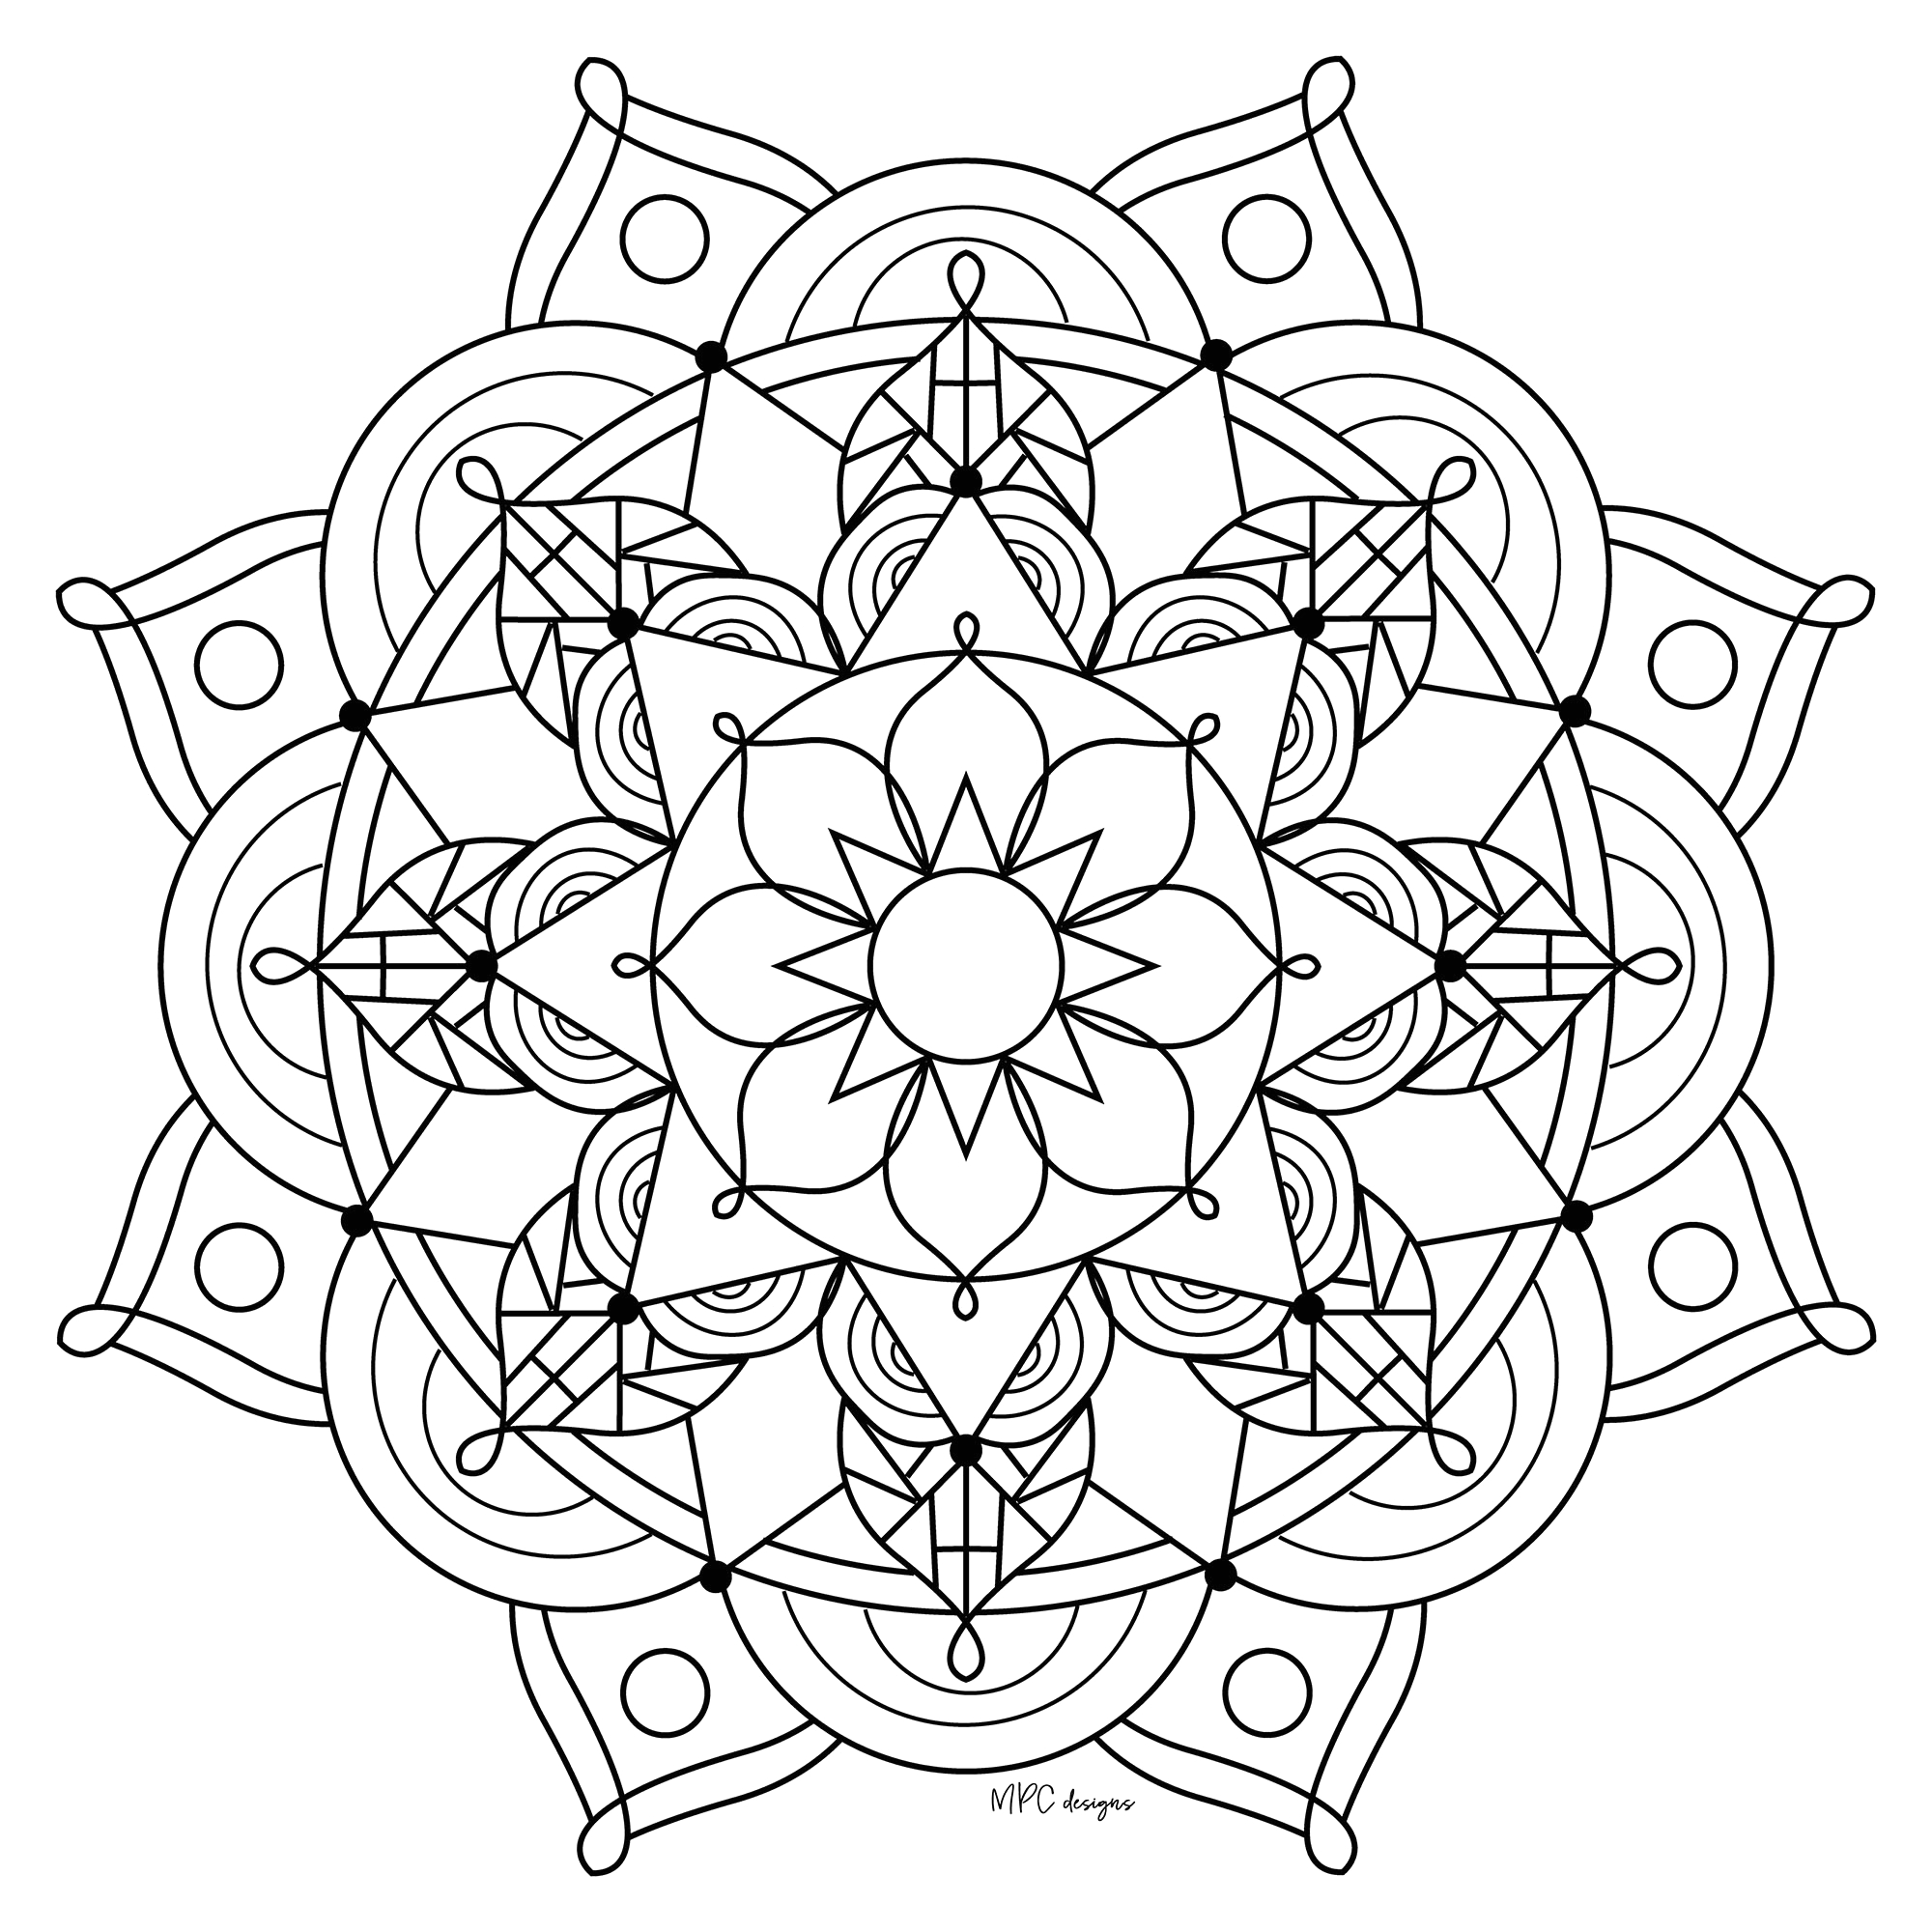 Free Printable Mandala Coloring Pages for Kids Mandalas to Color for Kids Mandalas Kids Coloring Pages